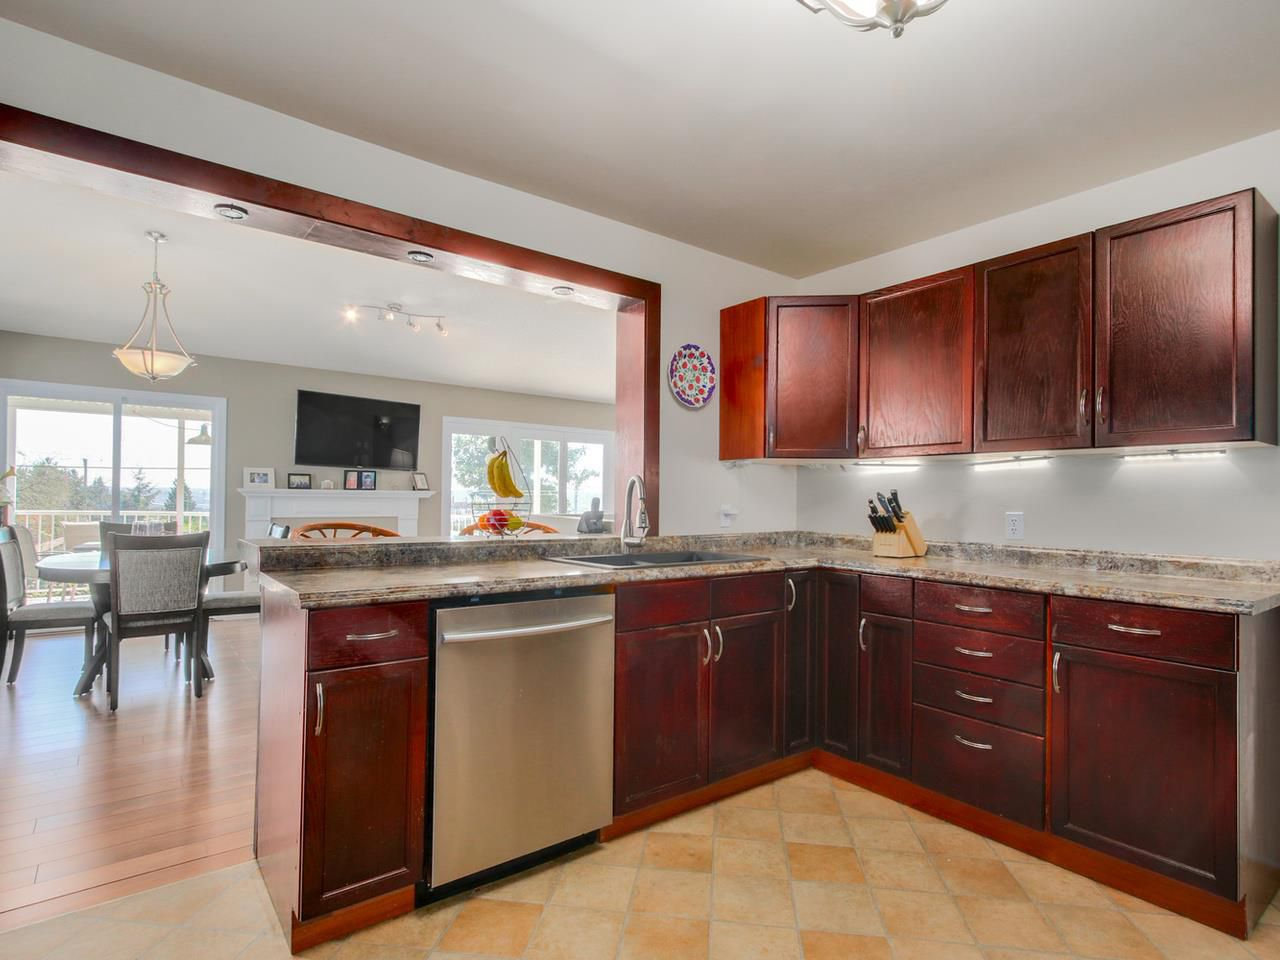 Photo 10: Photos: 449 E 5TH Street in North Vancouver: Lower Lonsdale House for sale : MLS®# R2056647